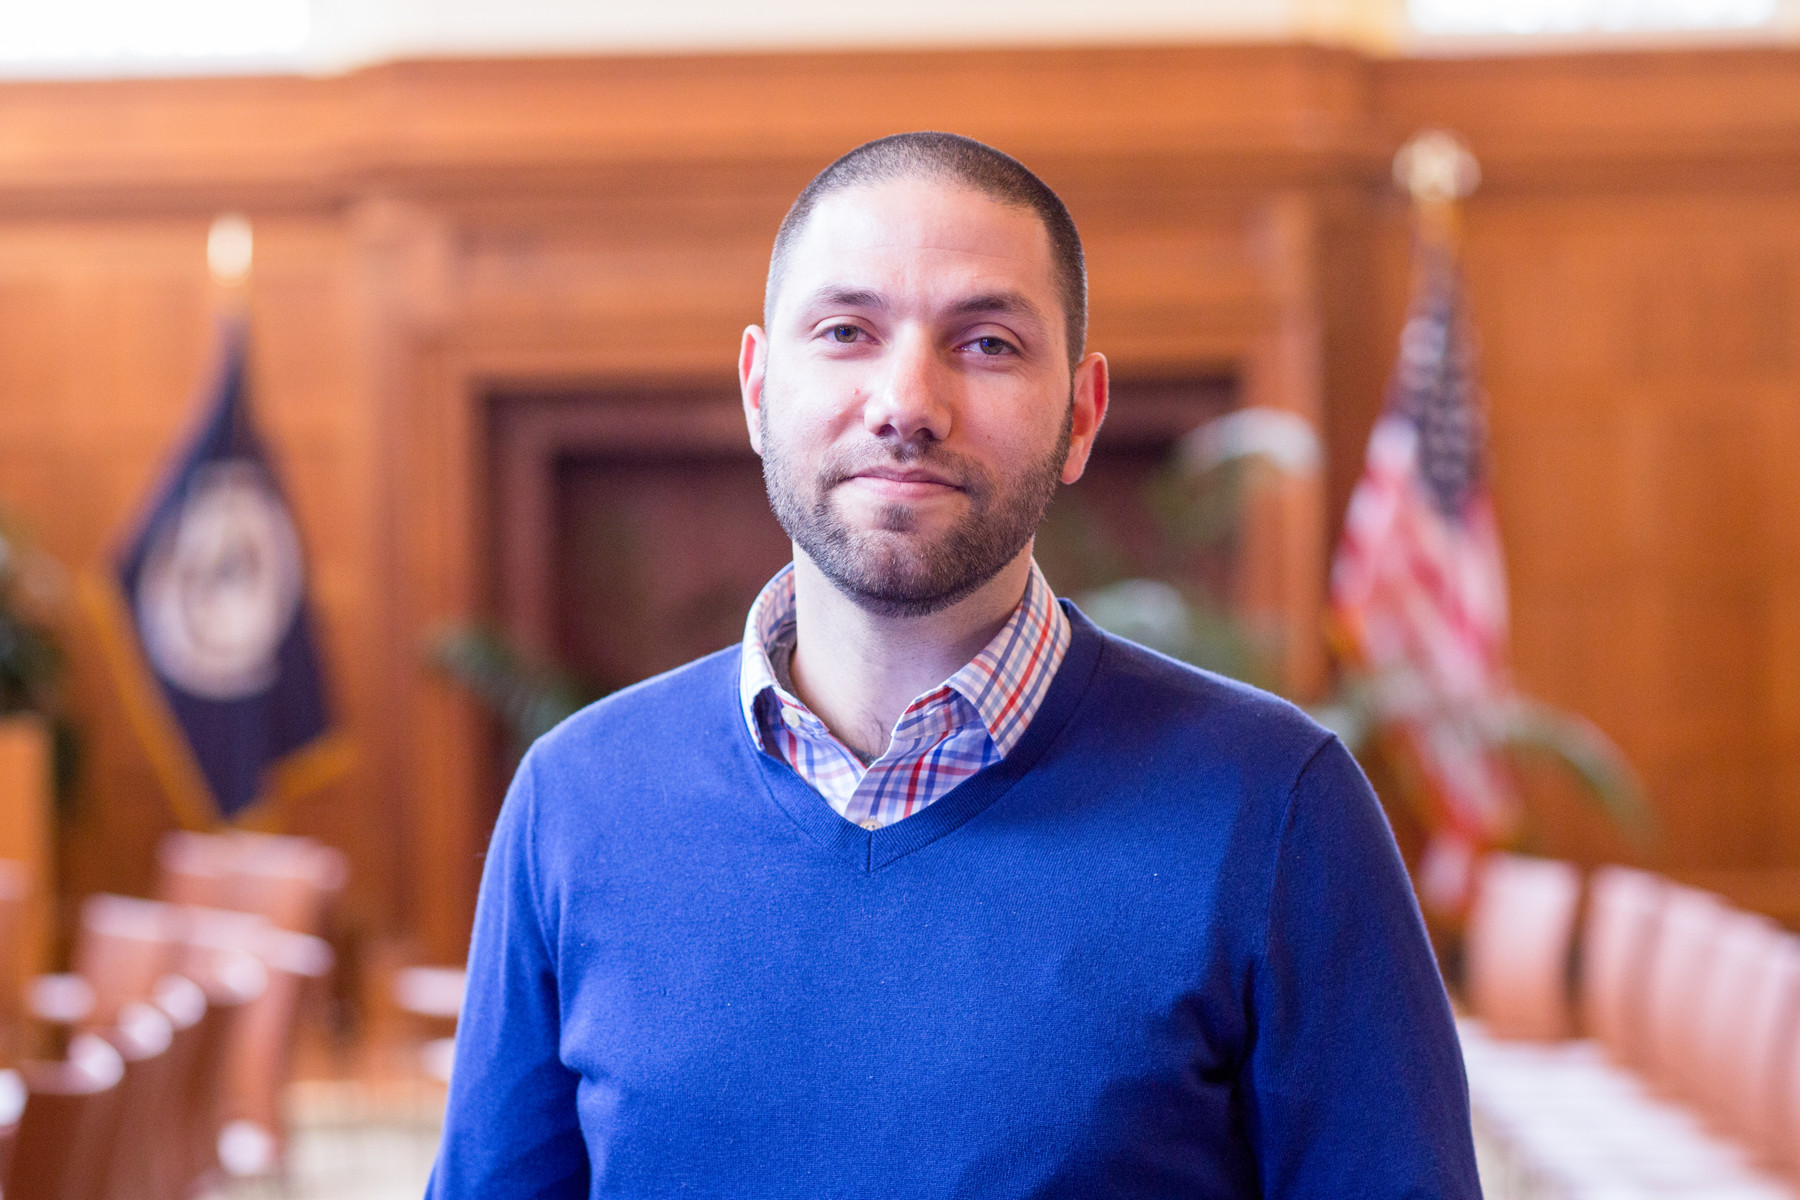 Benjamin Converse, an assistant professor in the Frank Batten School of Leadership and Public Policy, and in the Department of Psychology, looks at the effects of slowing down video of an alleged murder in new study.